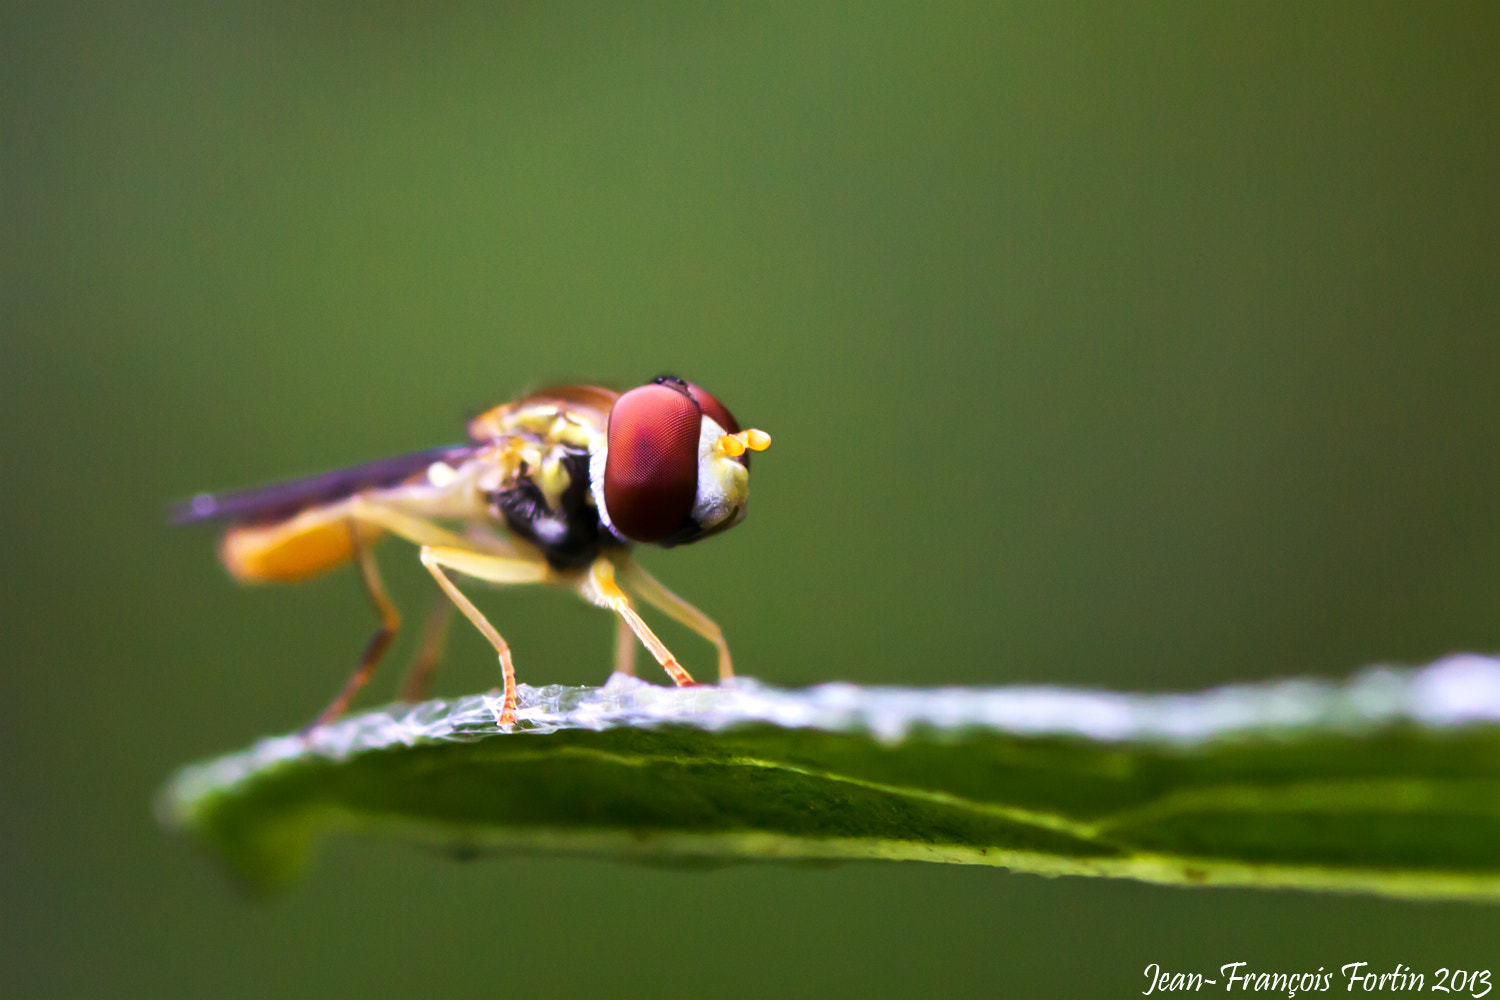 Photograph Yellow fly by Jean-François Fortin on 500px